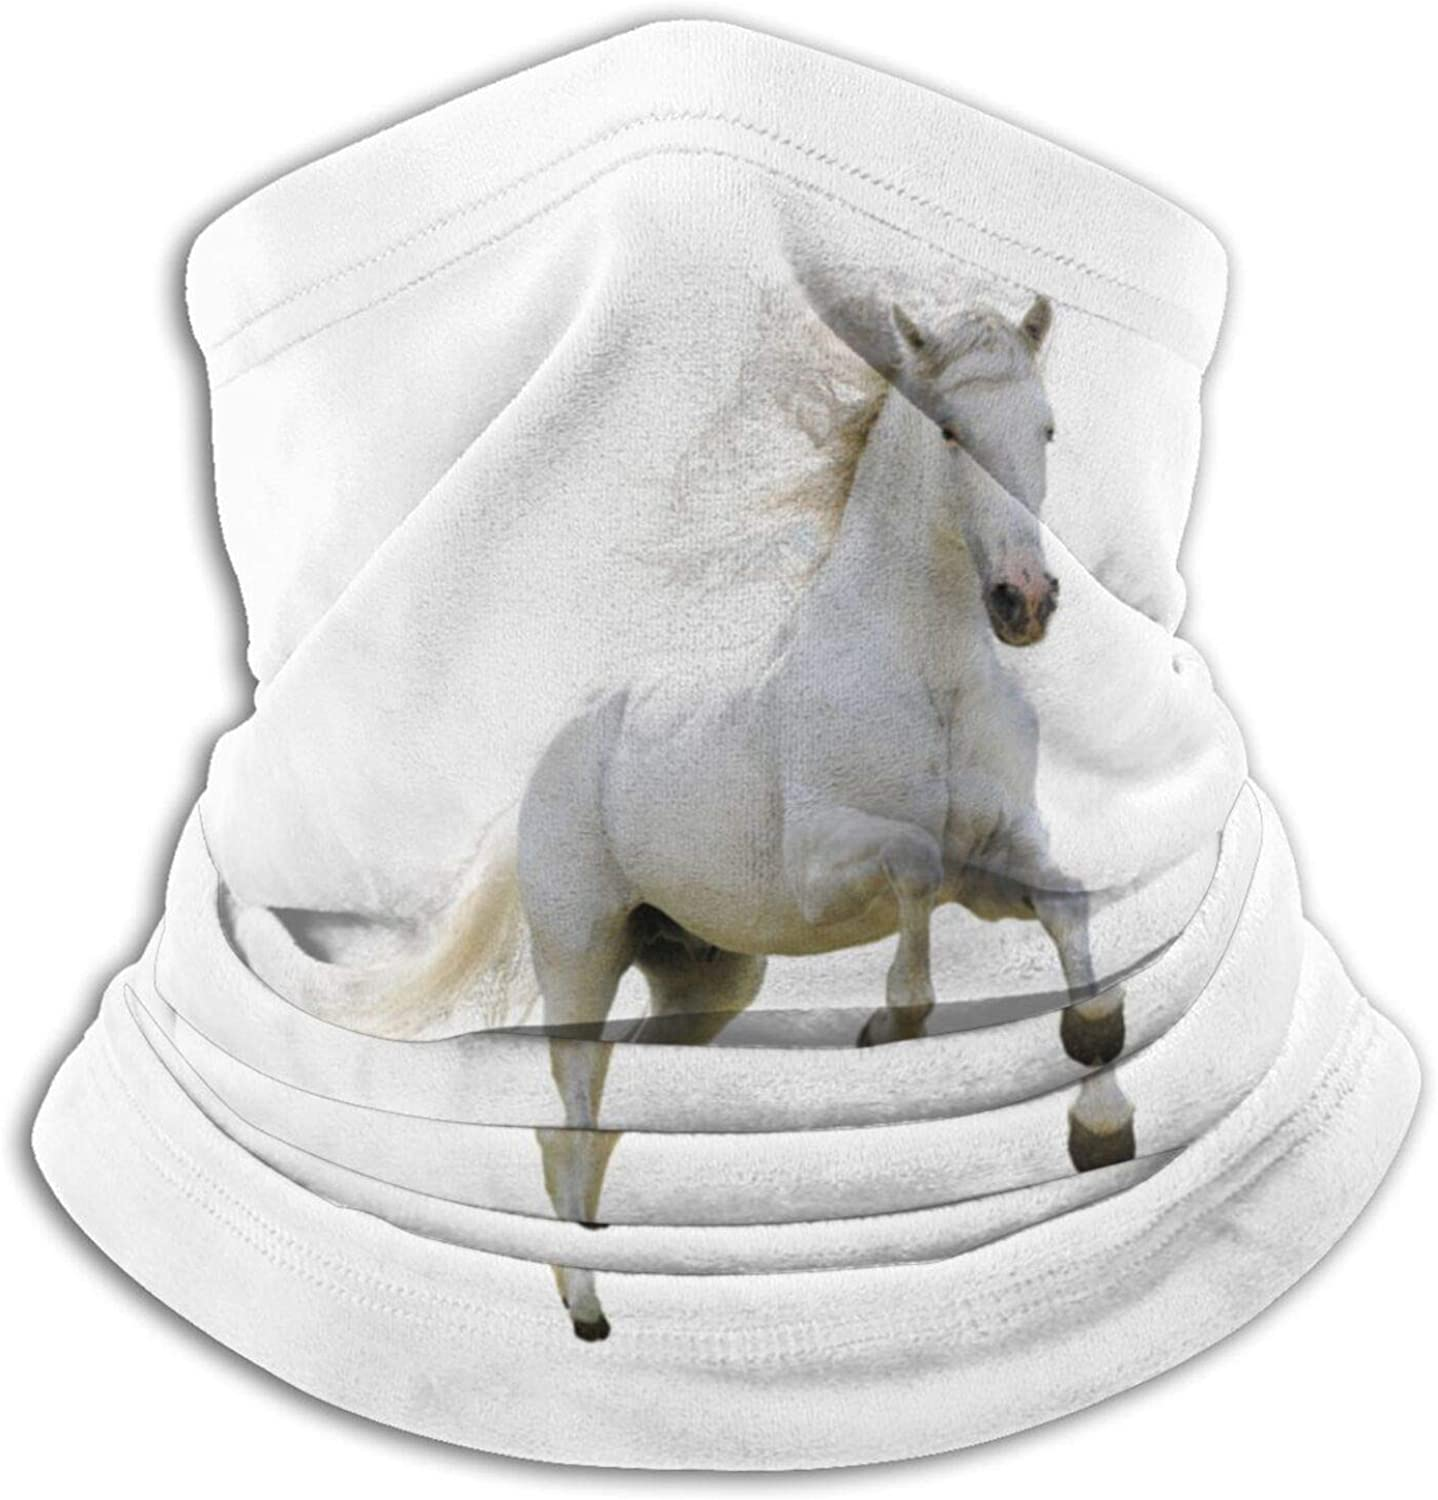 Winter Neck Gaiter Warmer Soft Face Mask Scarf Oil Painted Galloping Horse Outdoor Sports Neck Warmer Headwear for Men Women Black